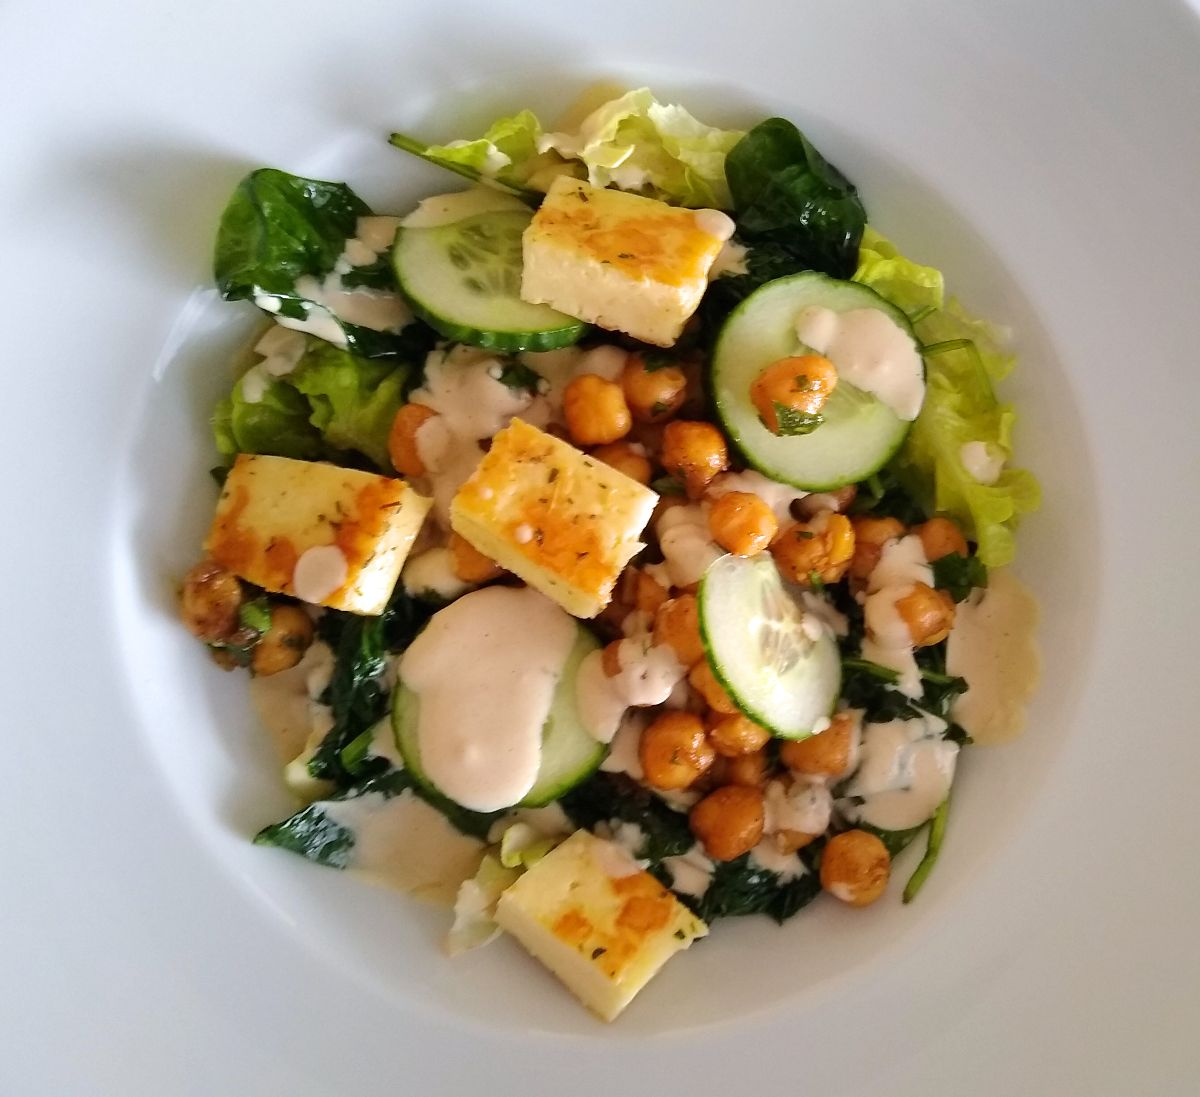 Crispy Chickpea Salad with Halloumi and Tahini Dressing